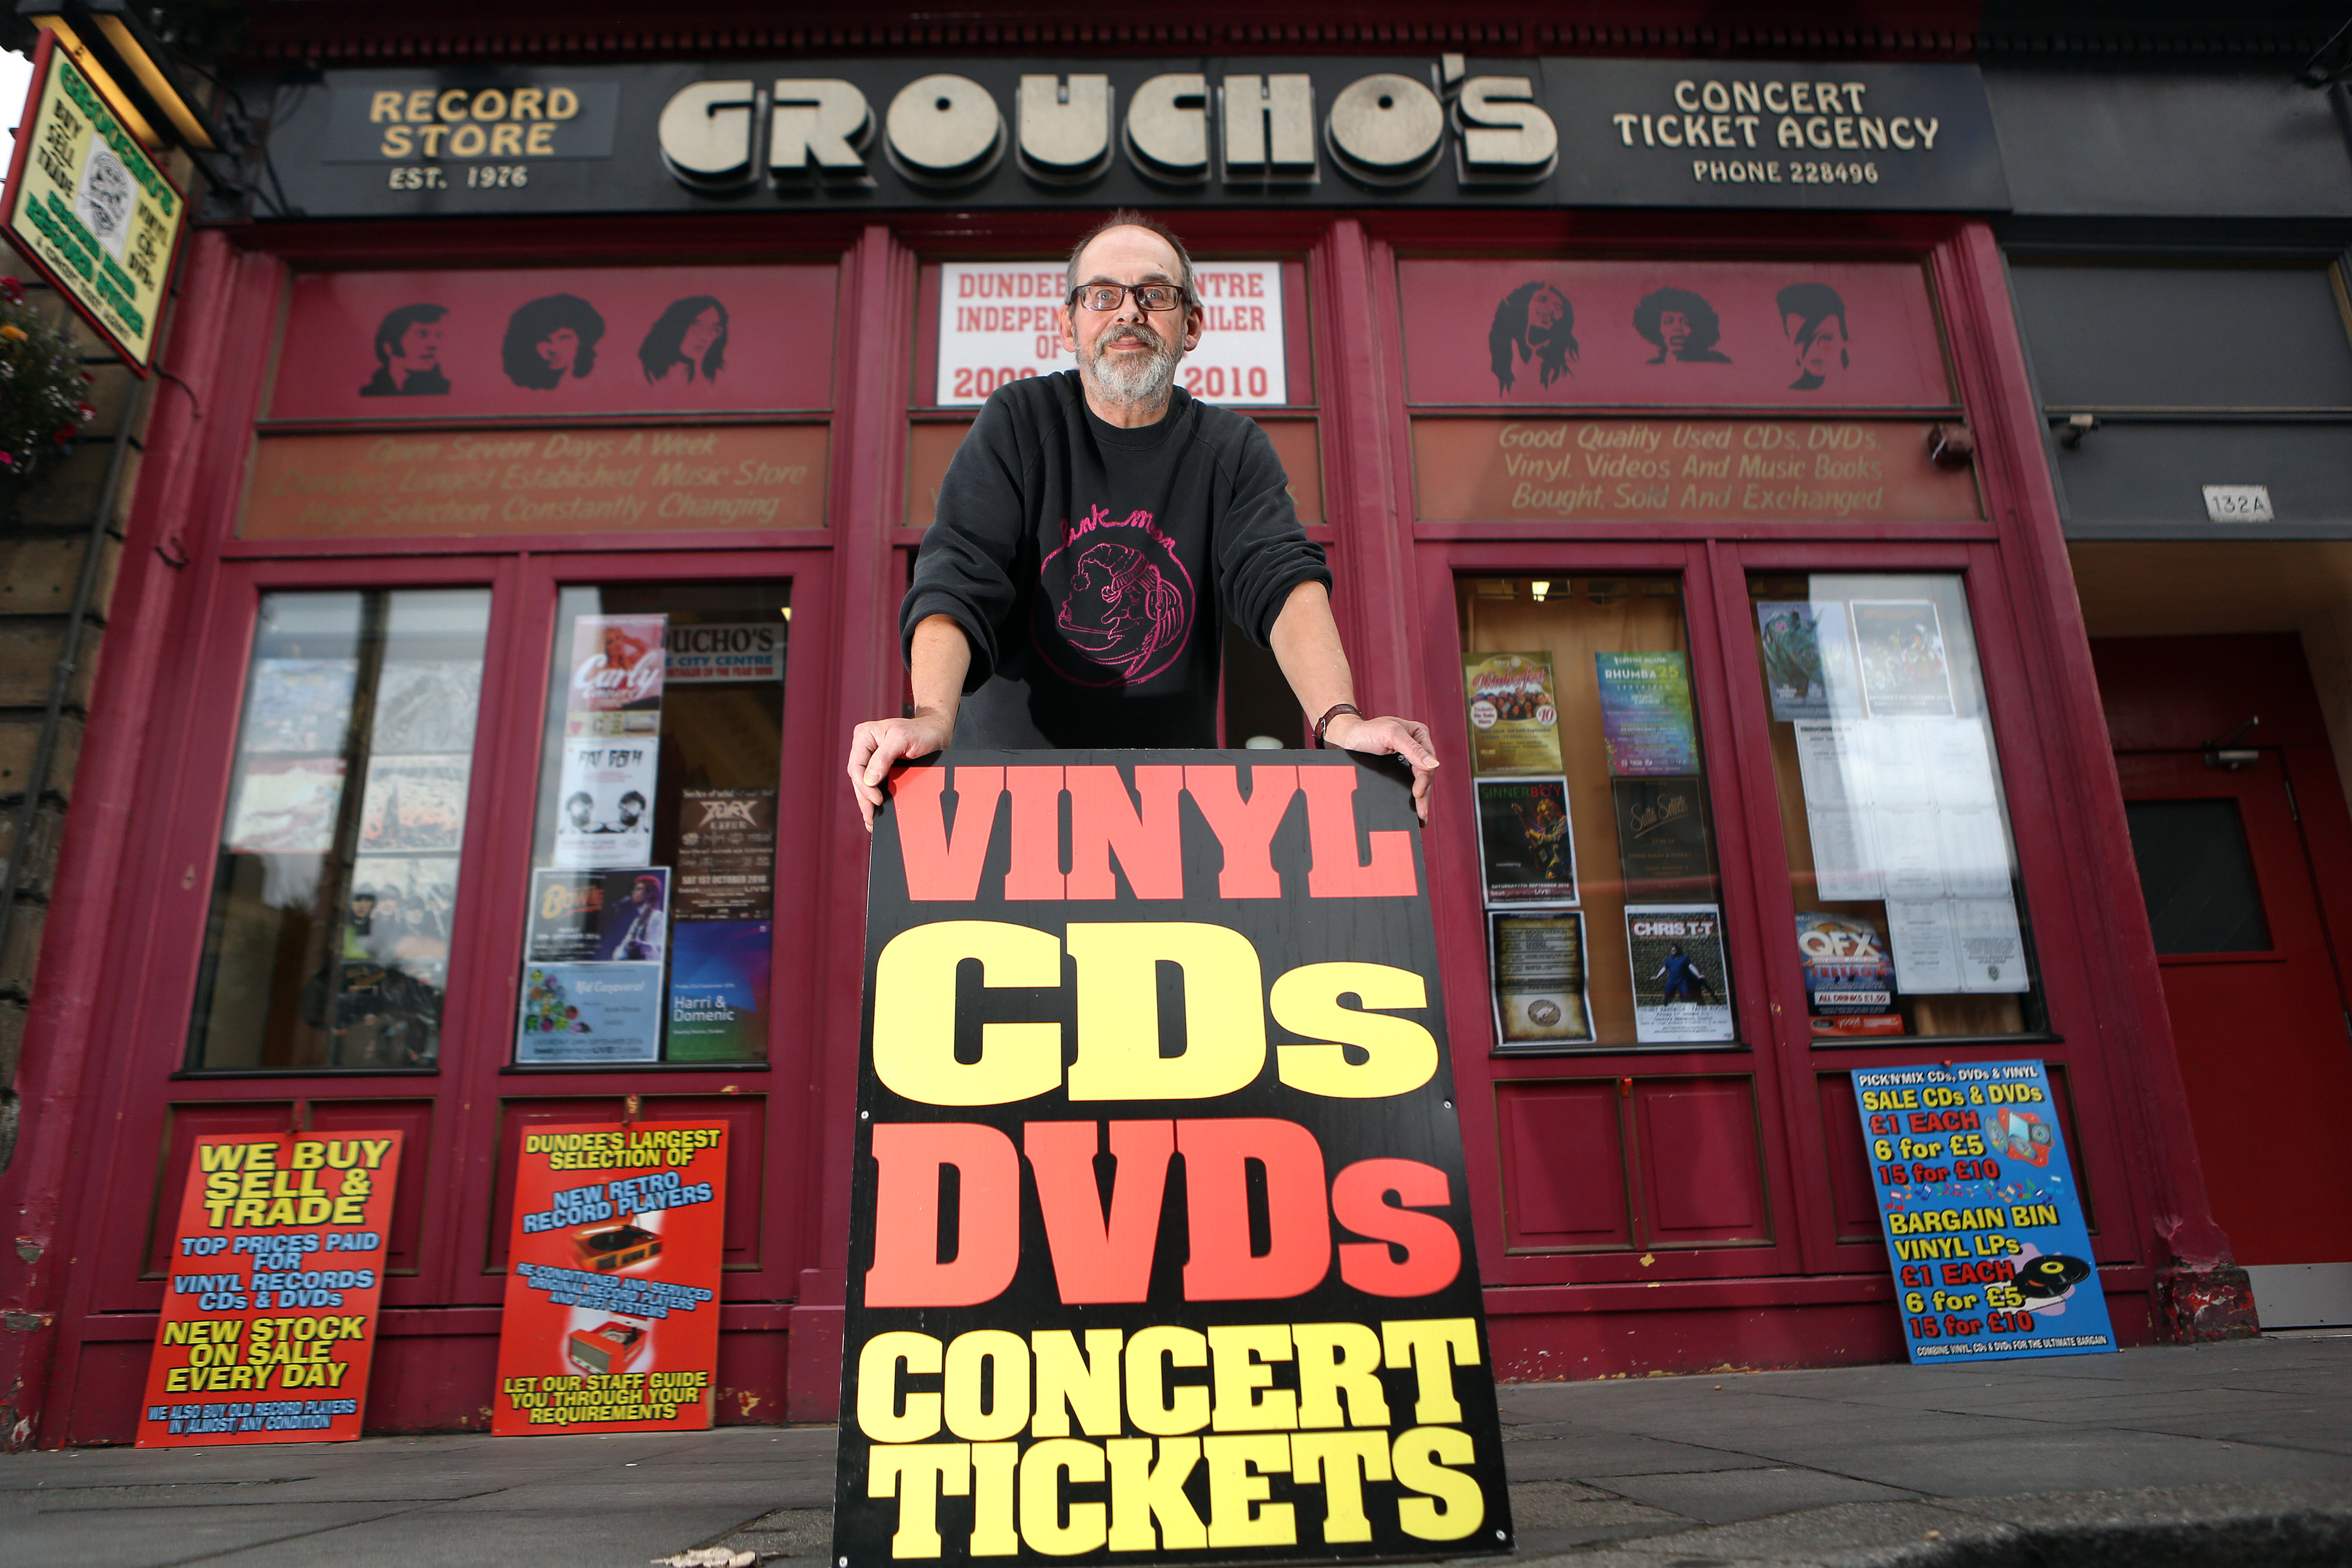 Alastair 'Breeks' Brodie of Groucho's record store in Dundee.